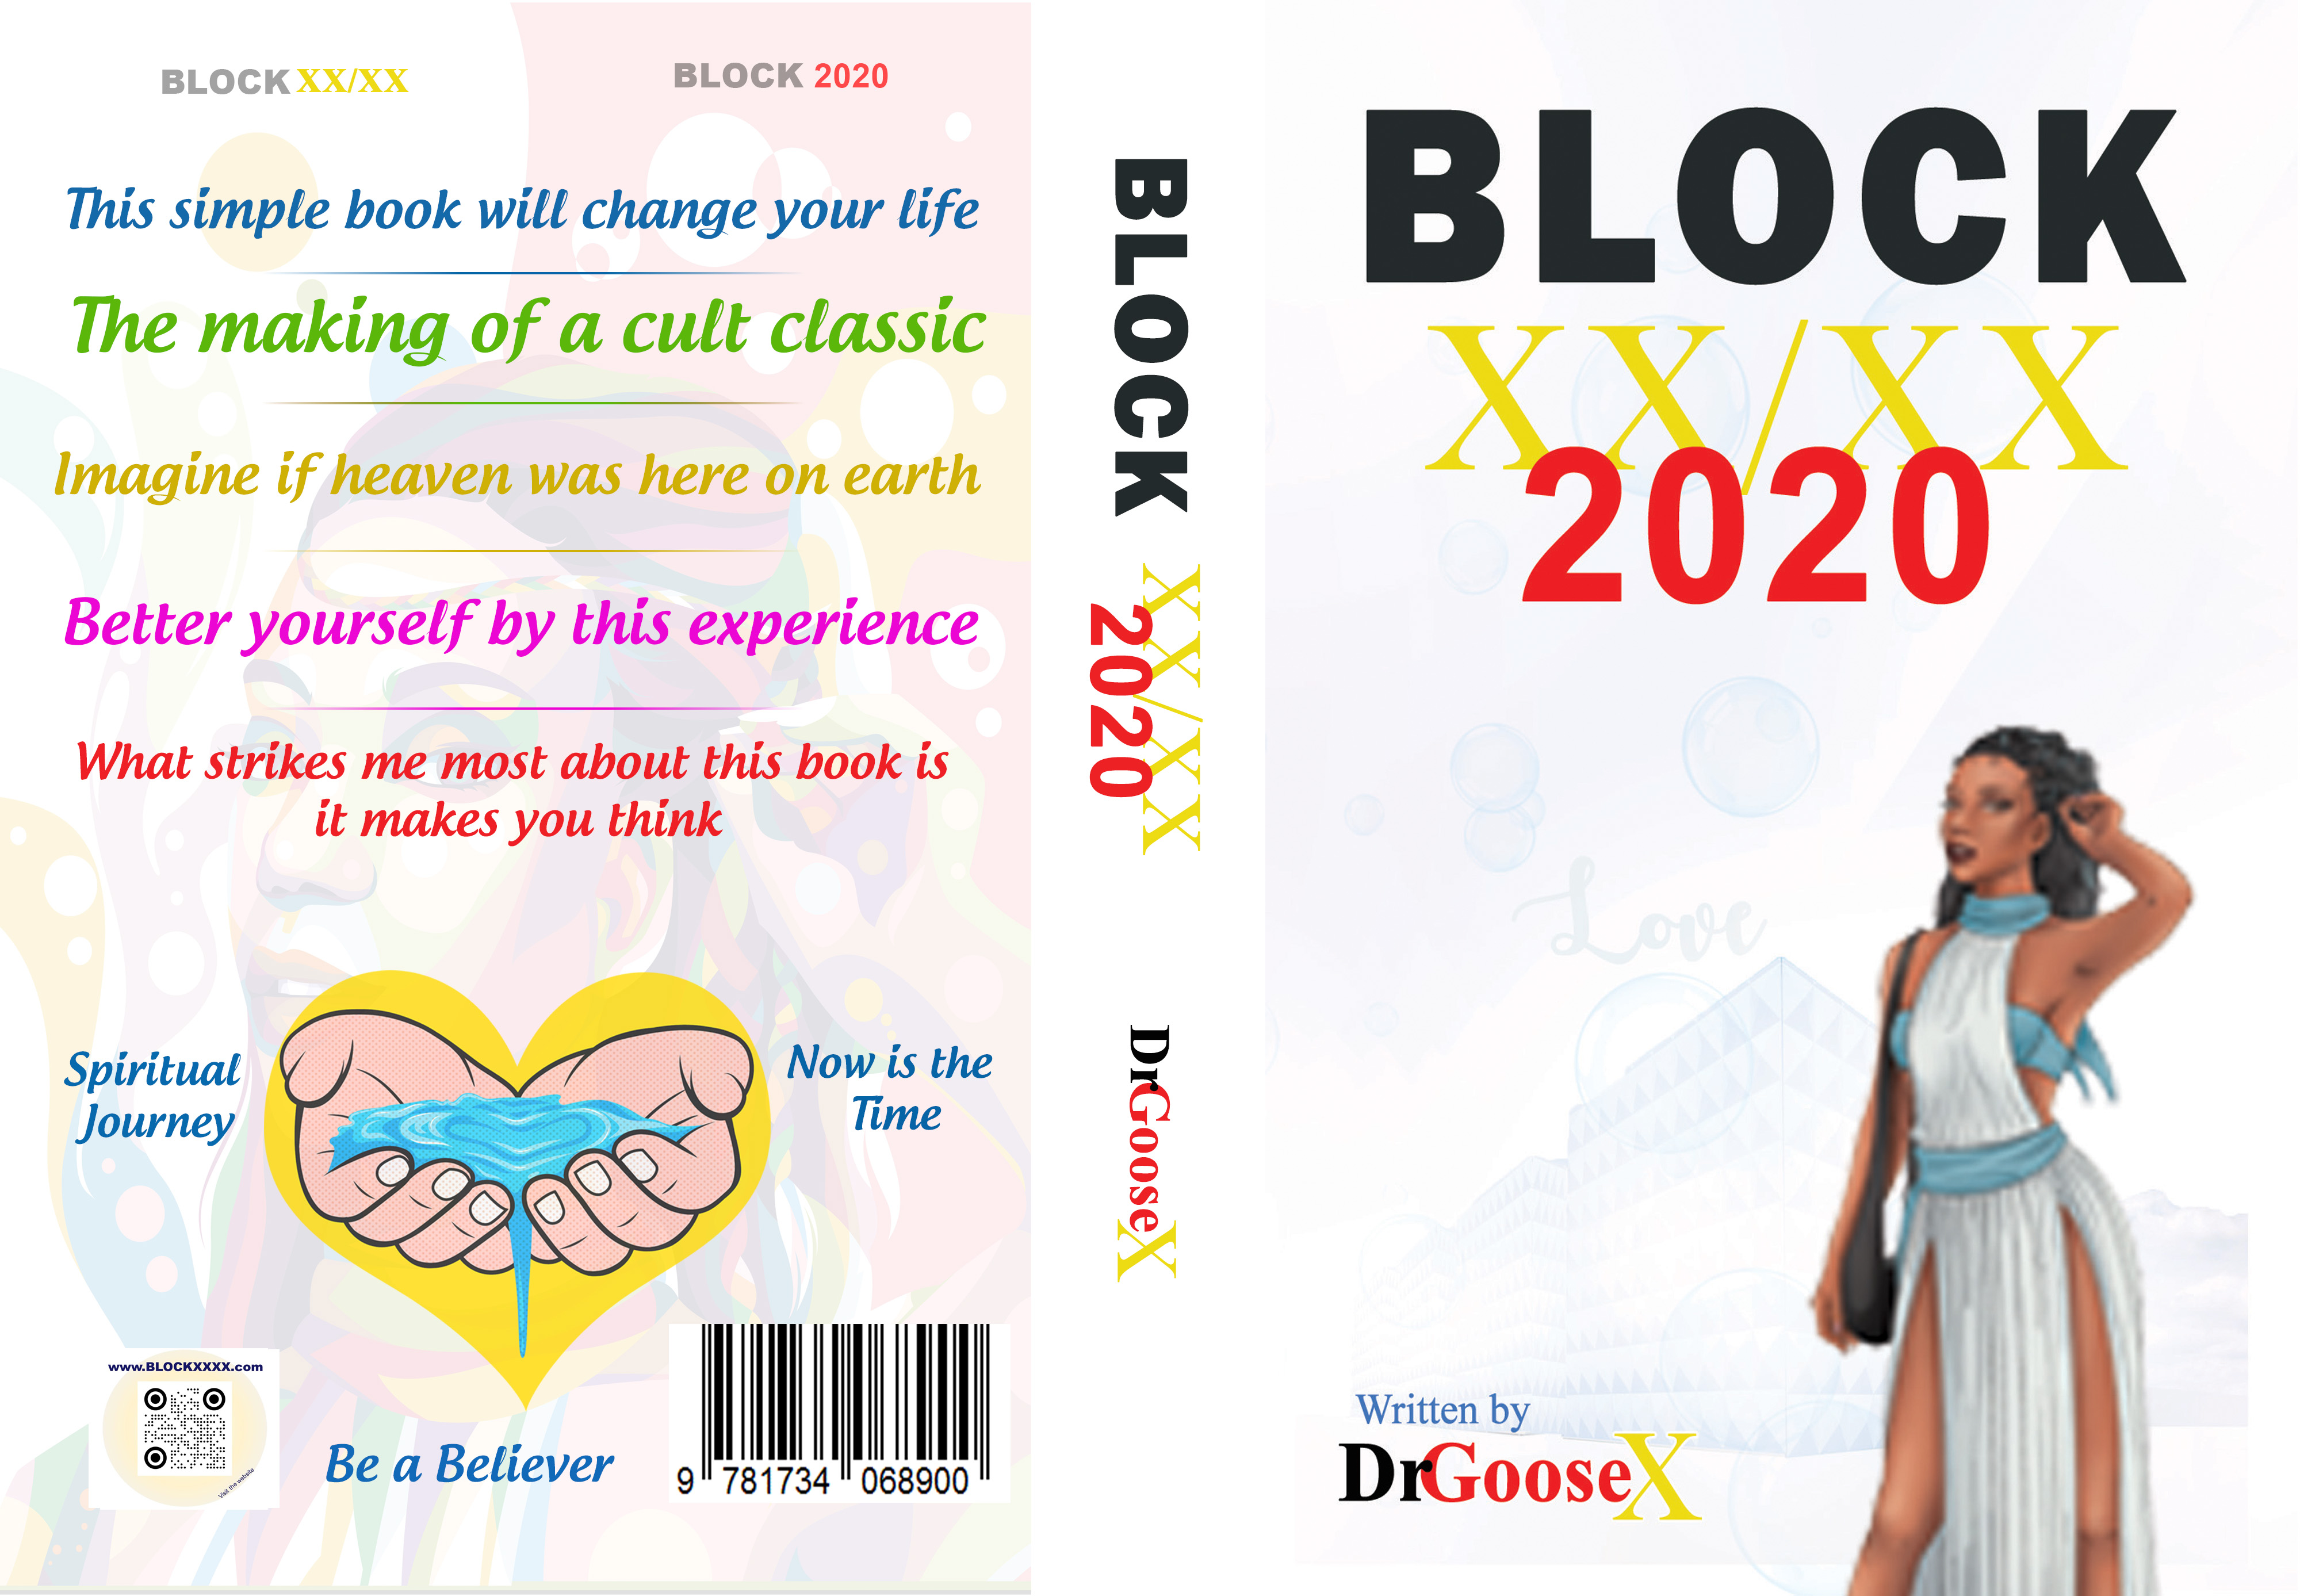 Secrets Revealed - Dr Goose X tells it all in New Book, Block 2020